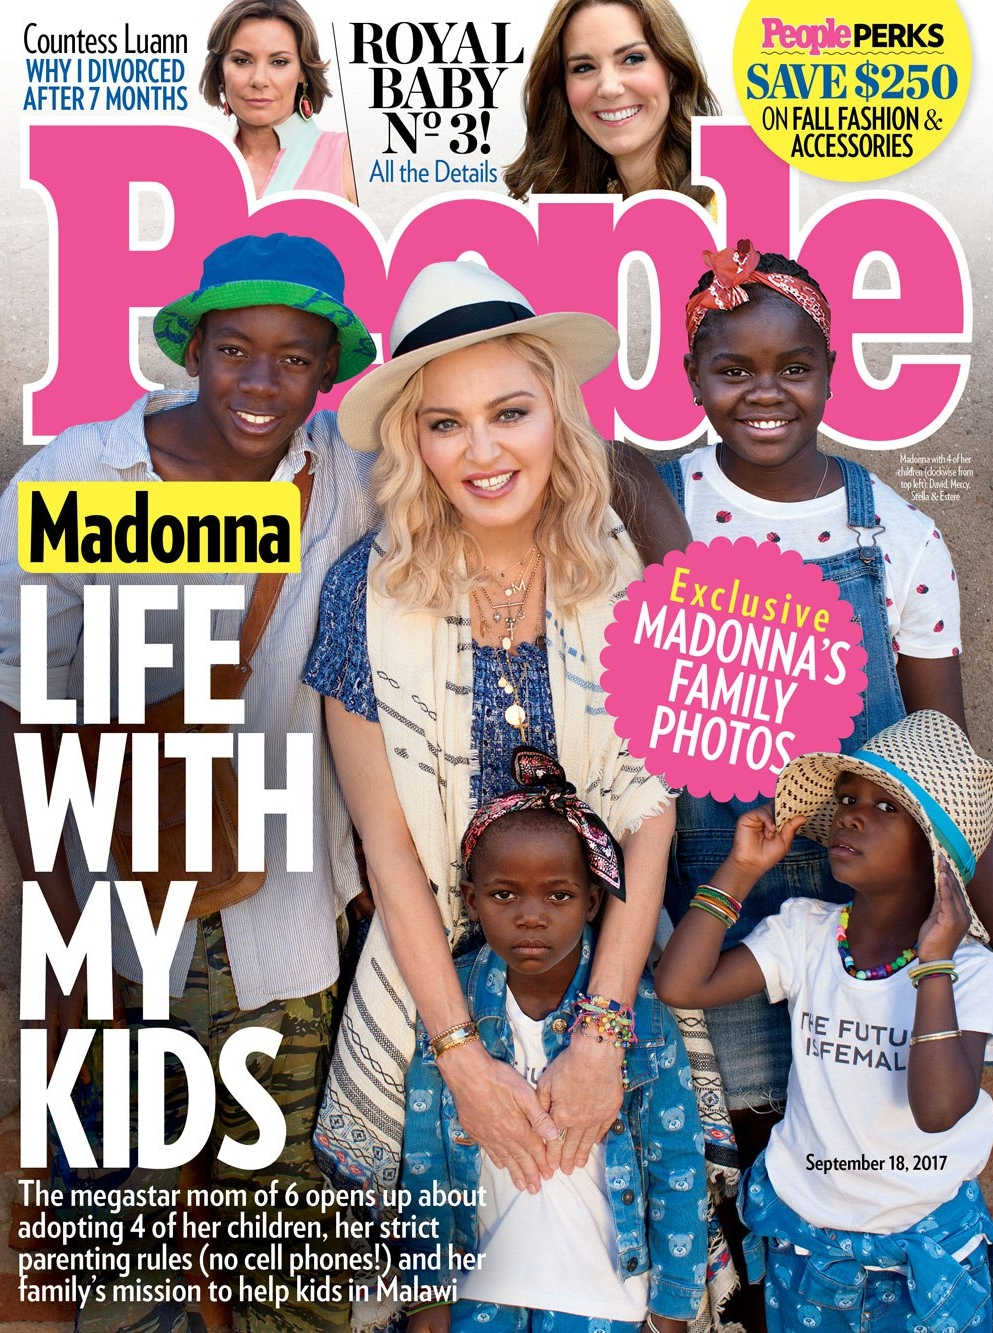 Madonna in the Let's Dance Black Onyx Necklace and Personalized Charm Necklace on the cover of People Magazine September 2017